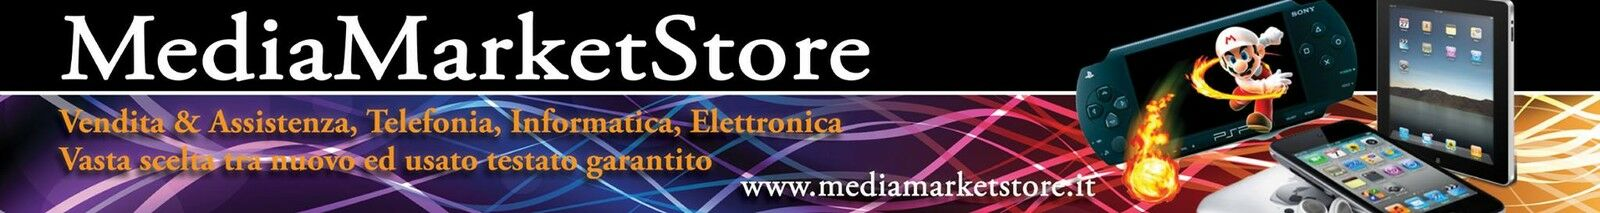 mediamarketstore_it76